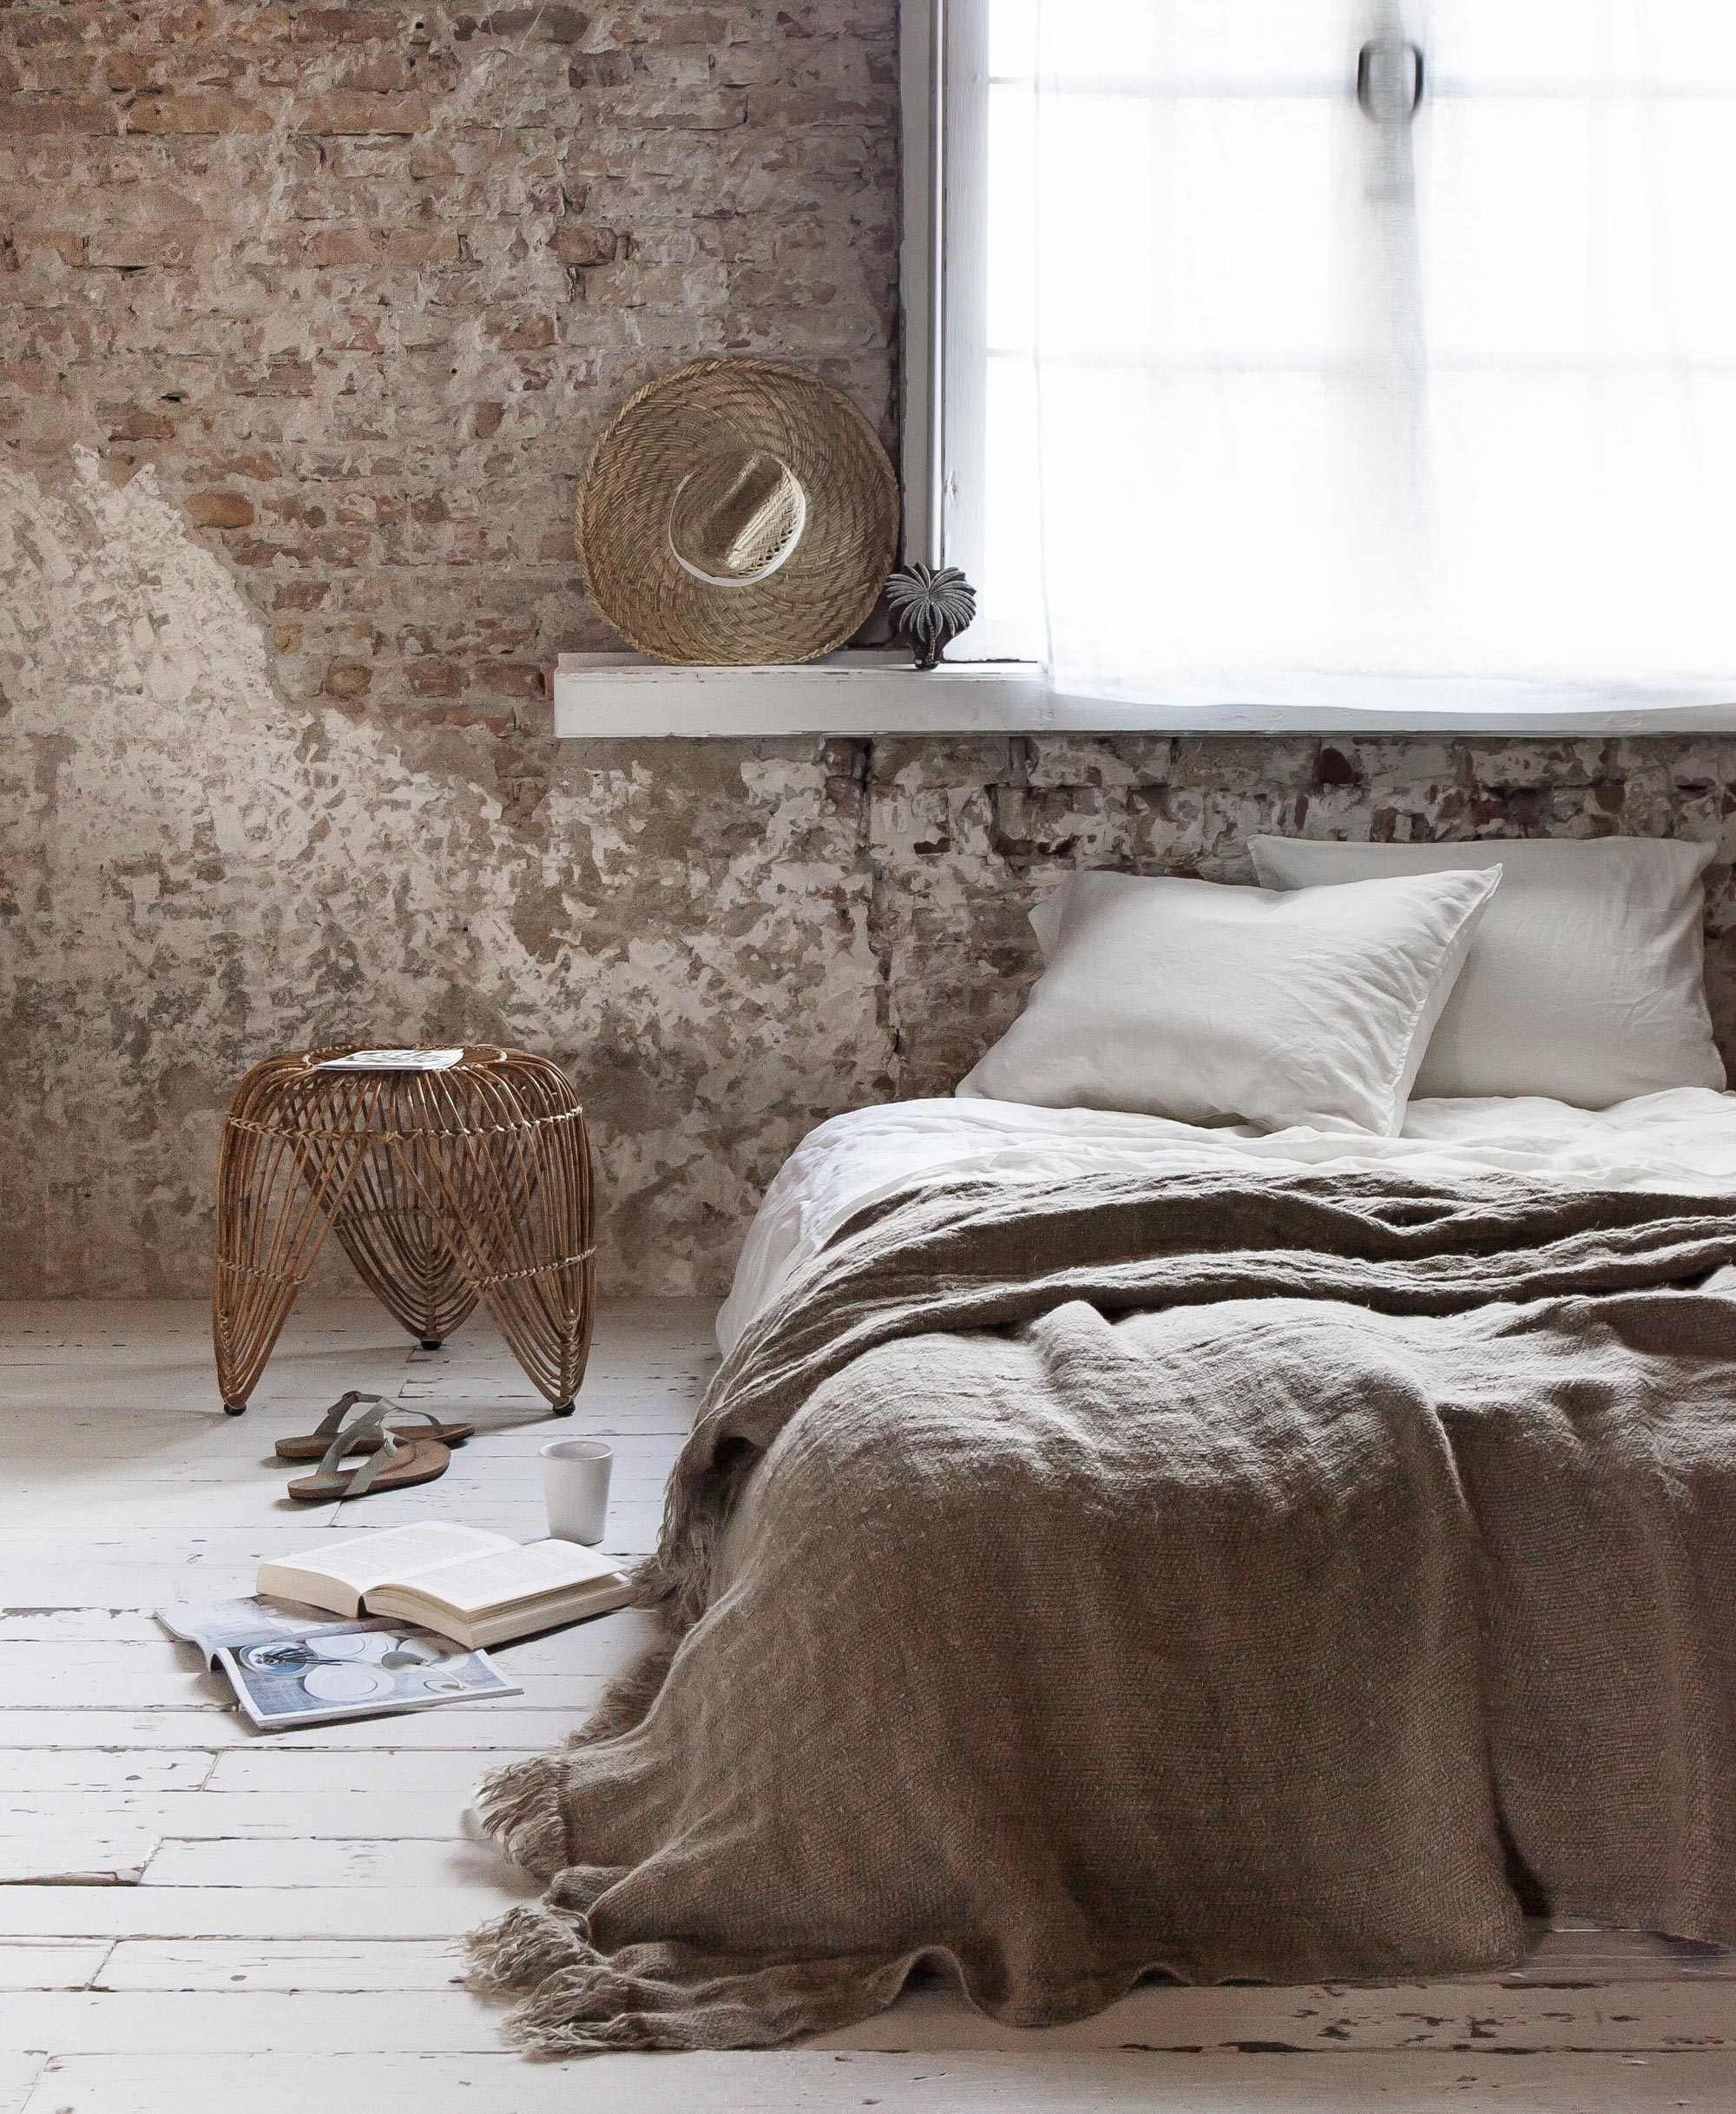 Bedroom, a place to rest